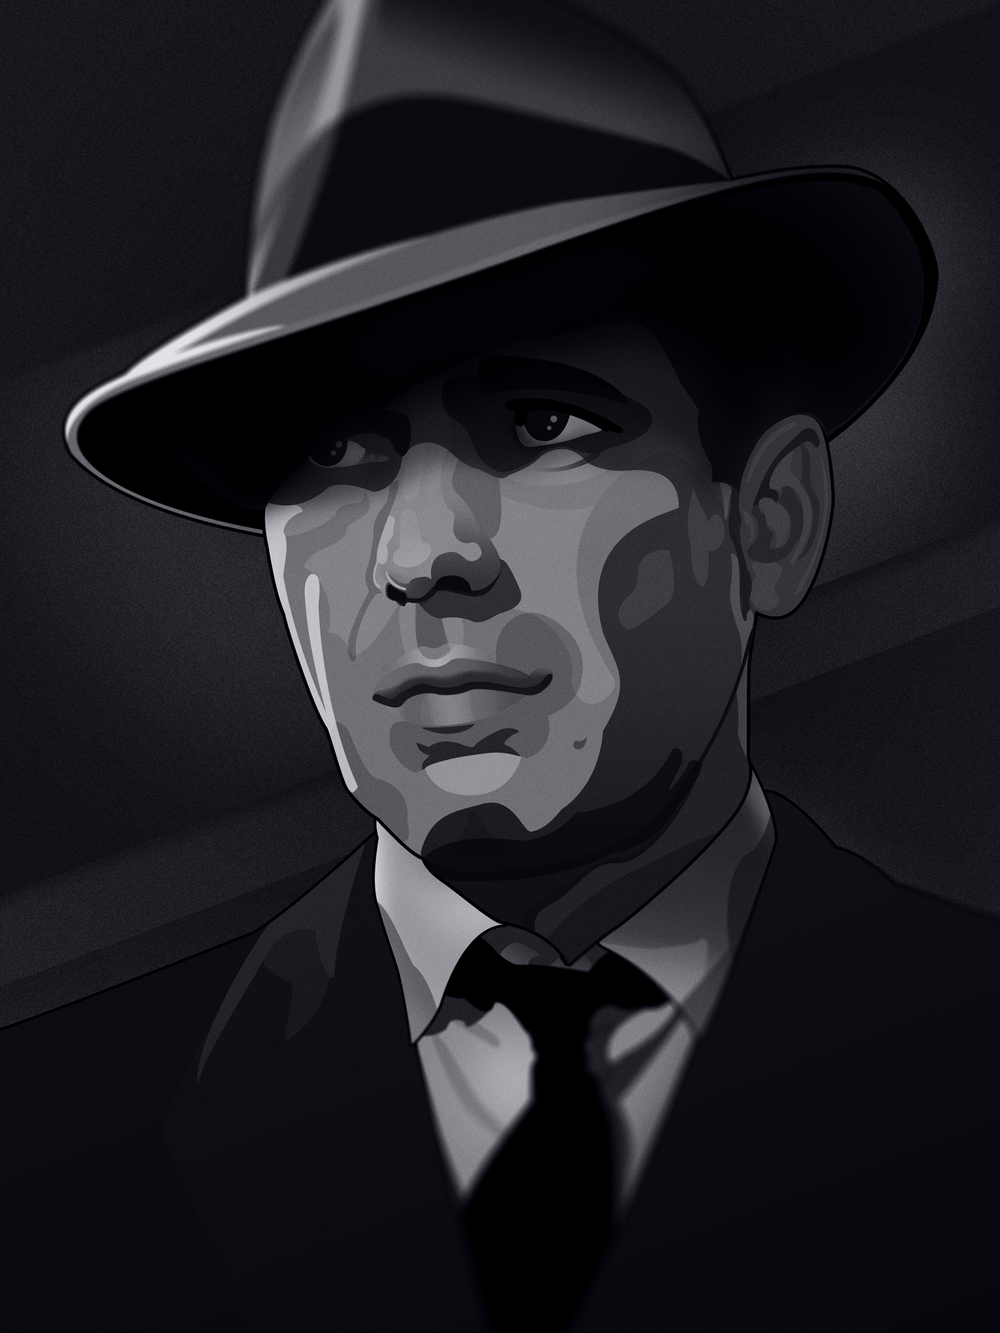 The Maltese Falcon: Sam Spade